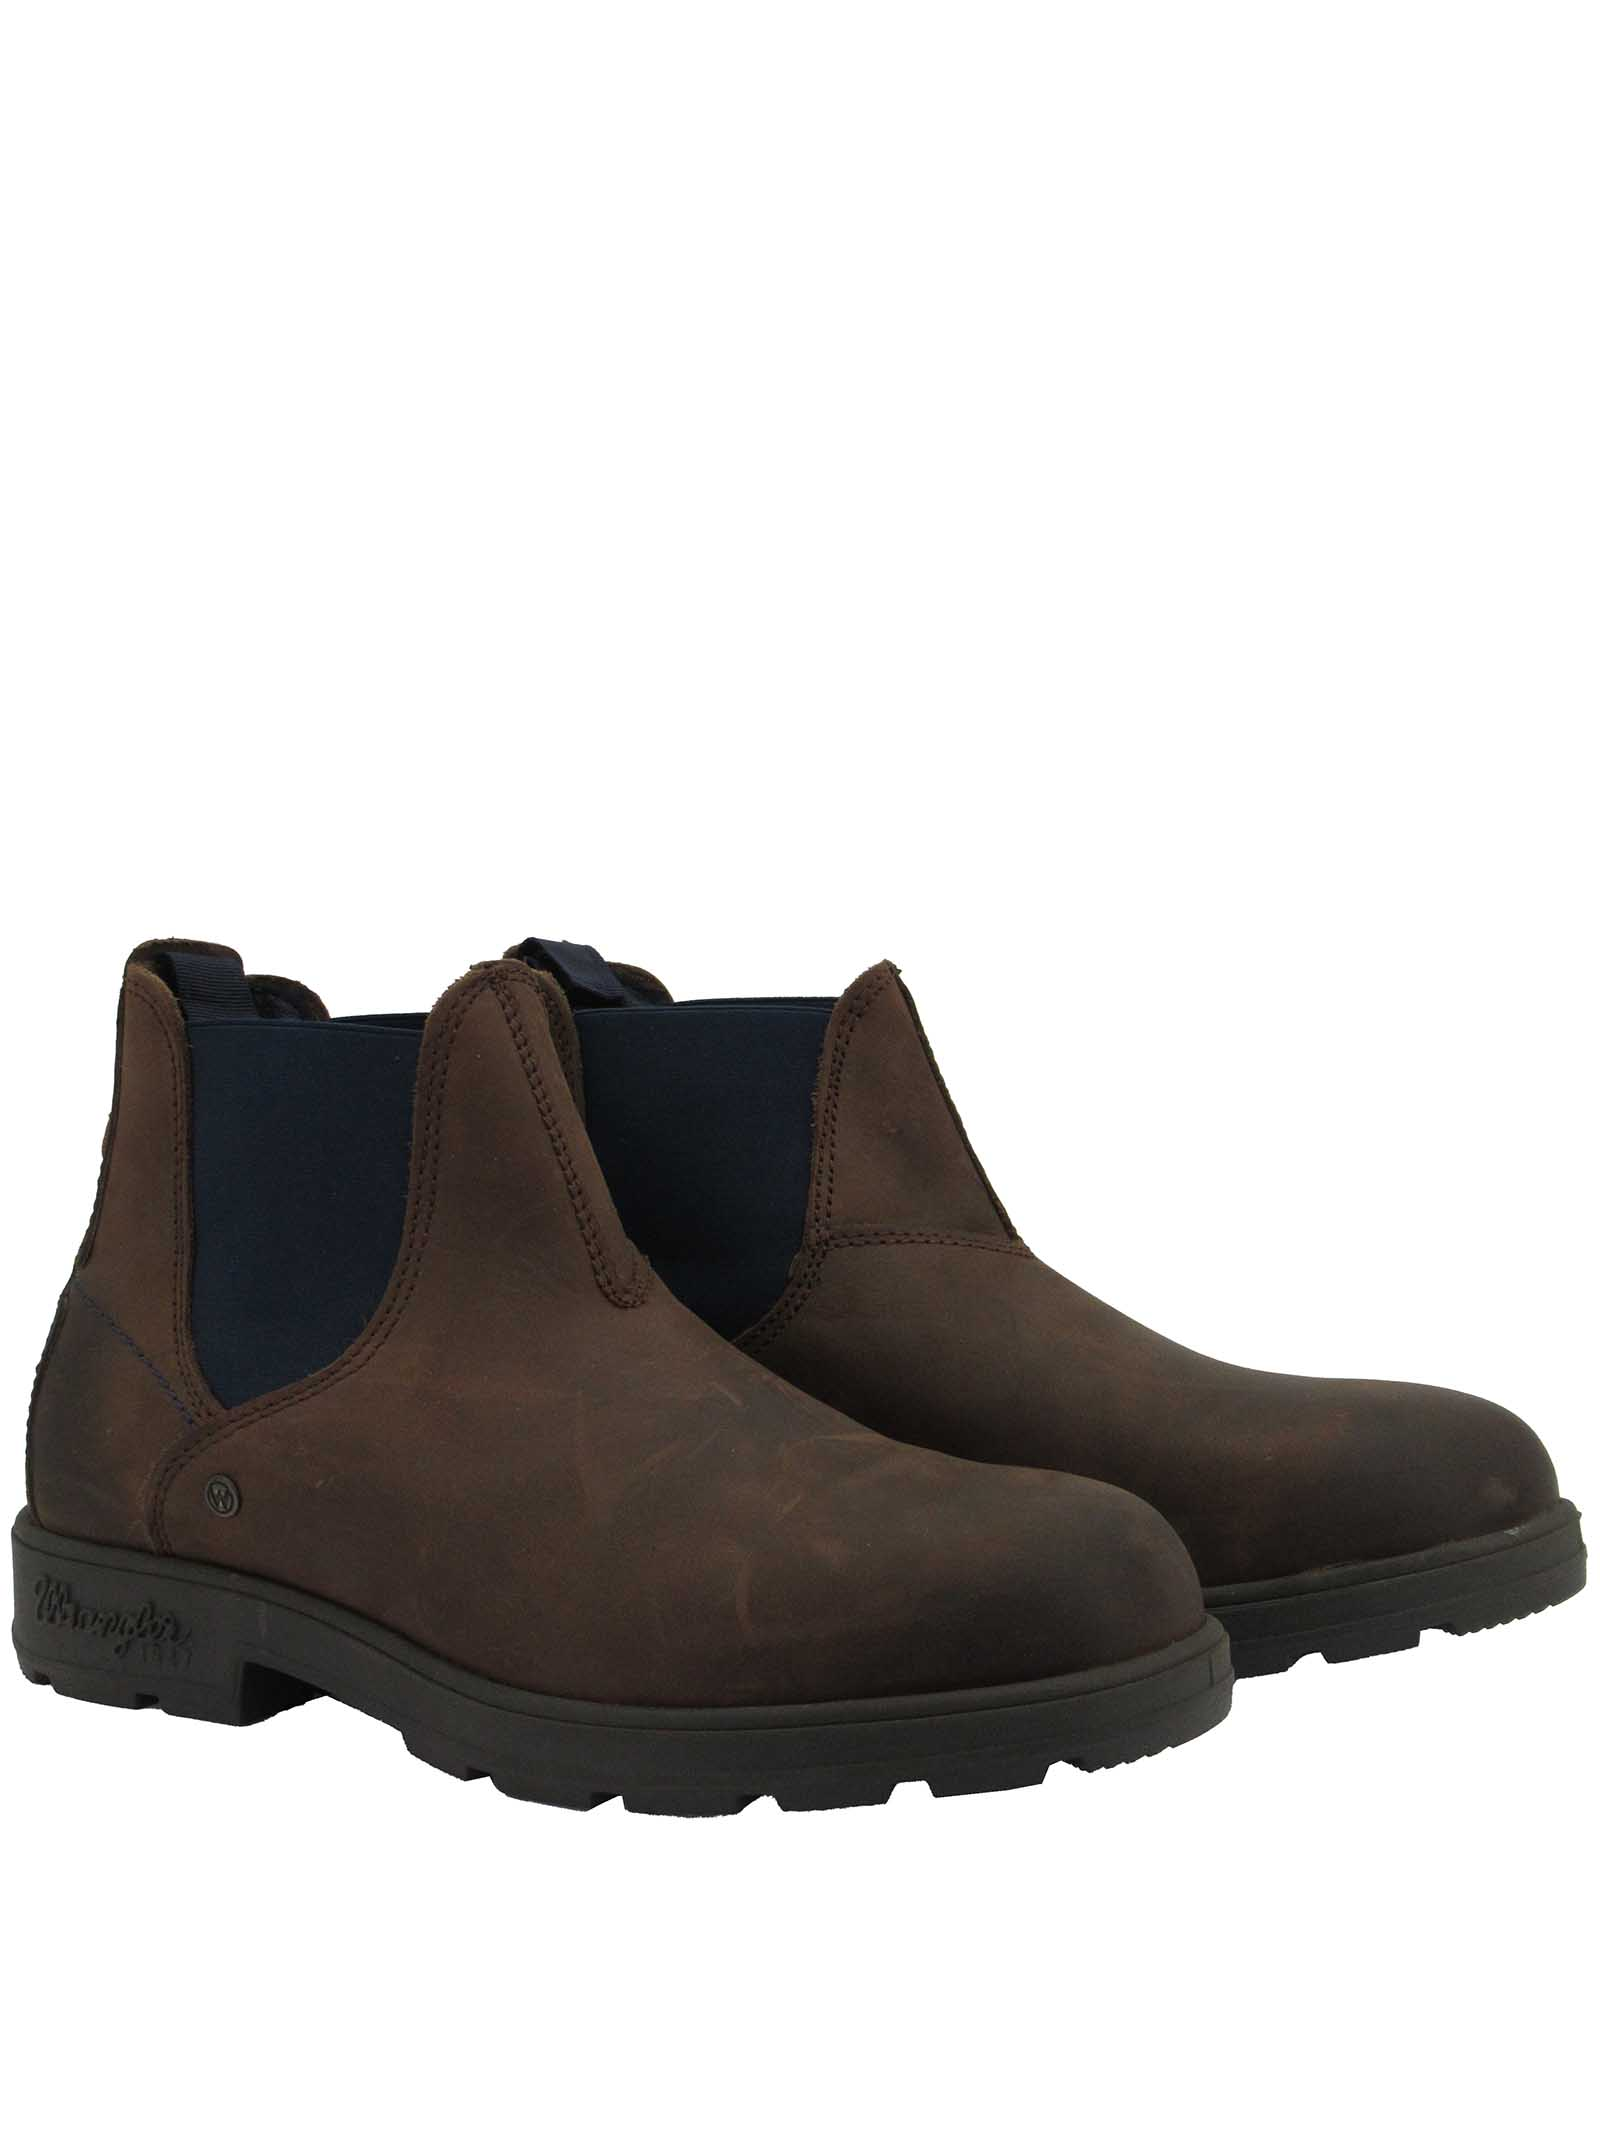 Men's Shoes Beatles Buddy Chelsea Boots in Tan Leather with Rubber Sole Wrangler | Ankle Boots | WM12030A030